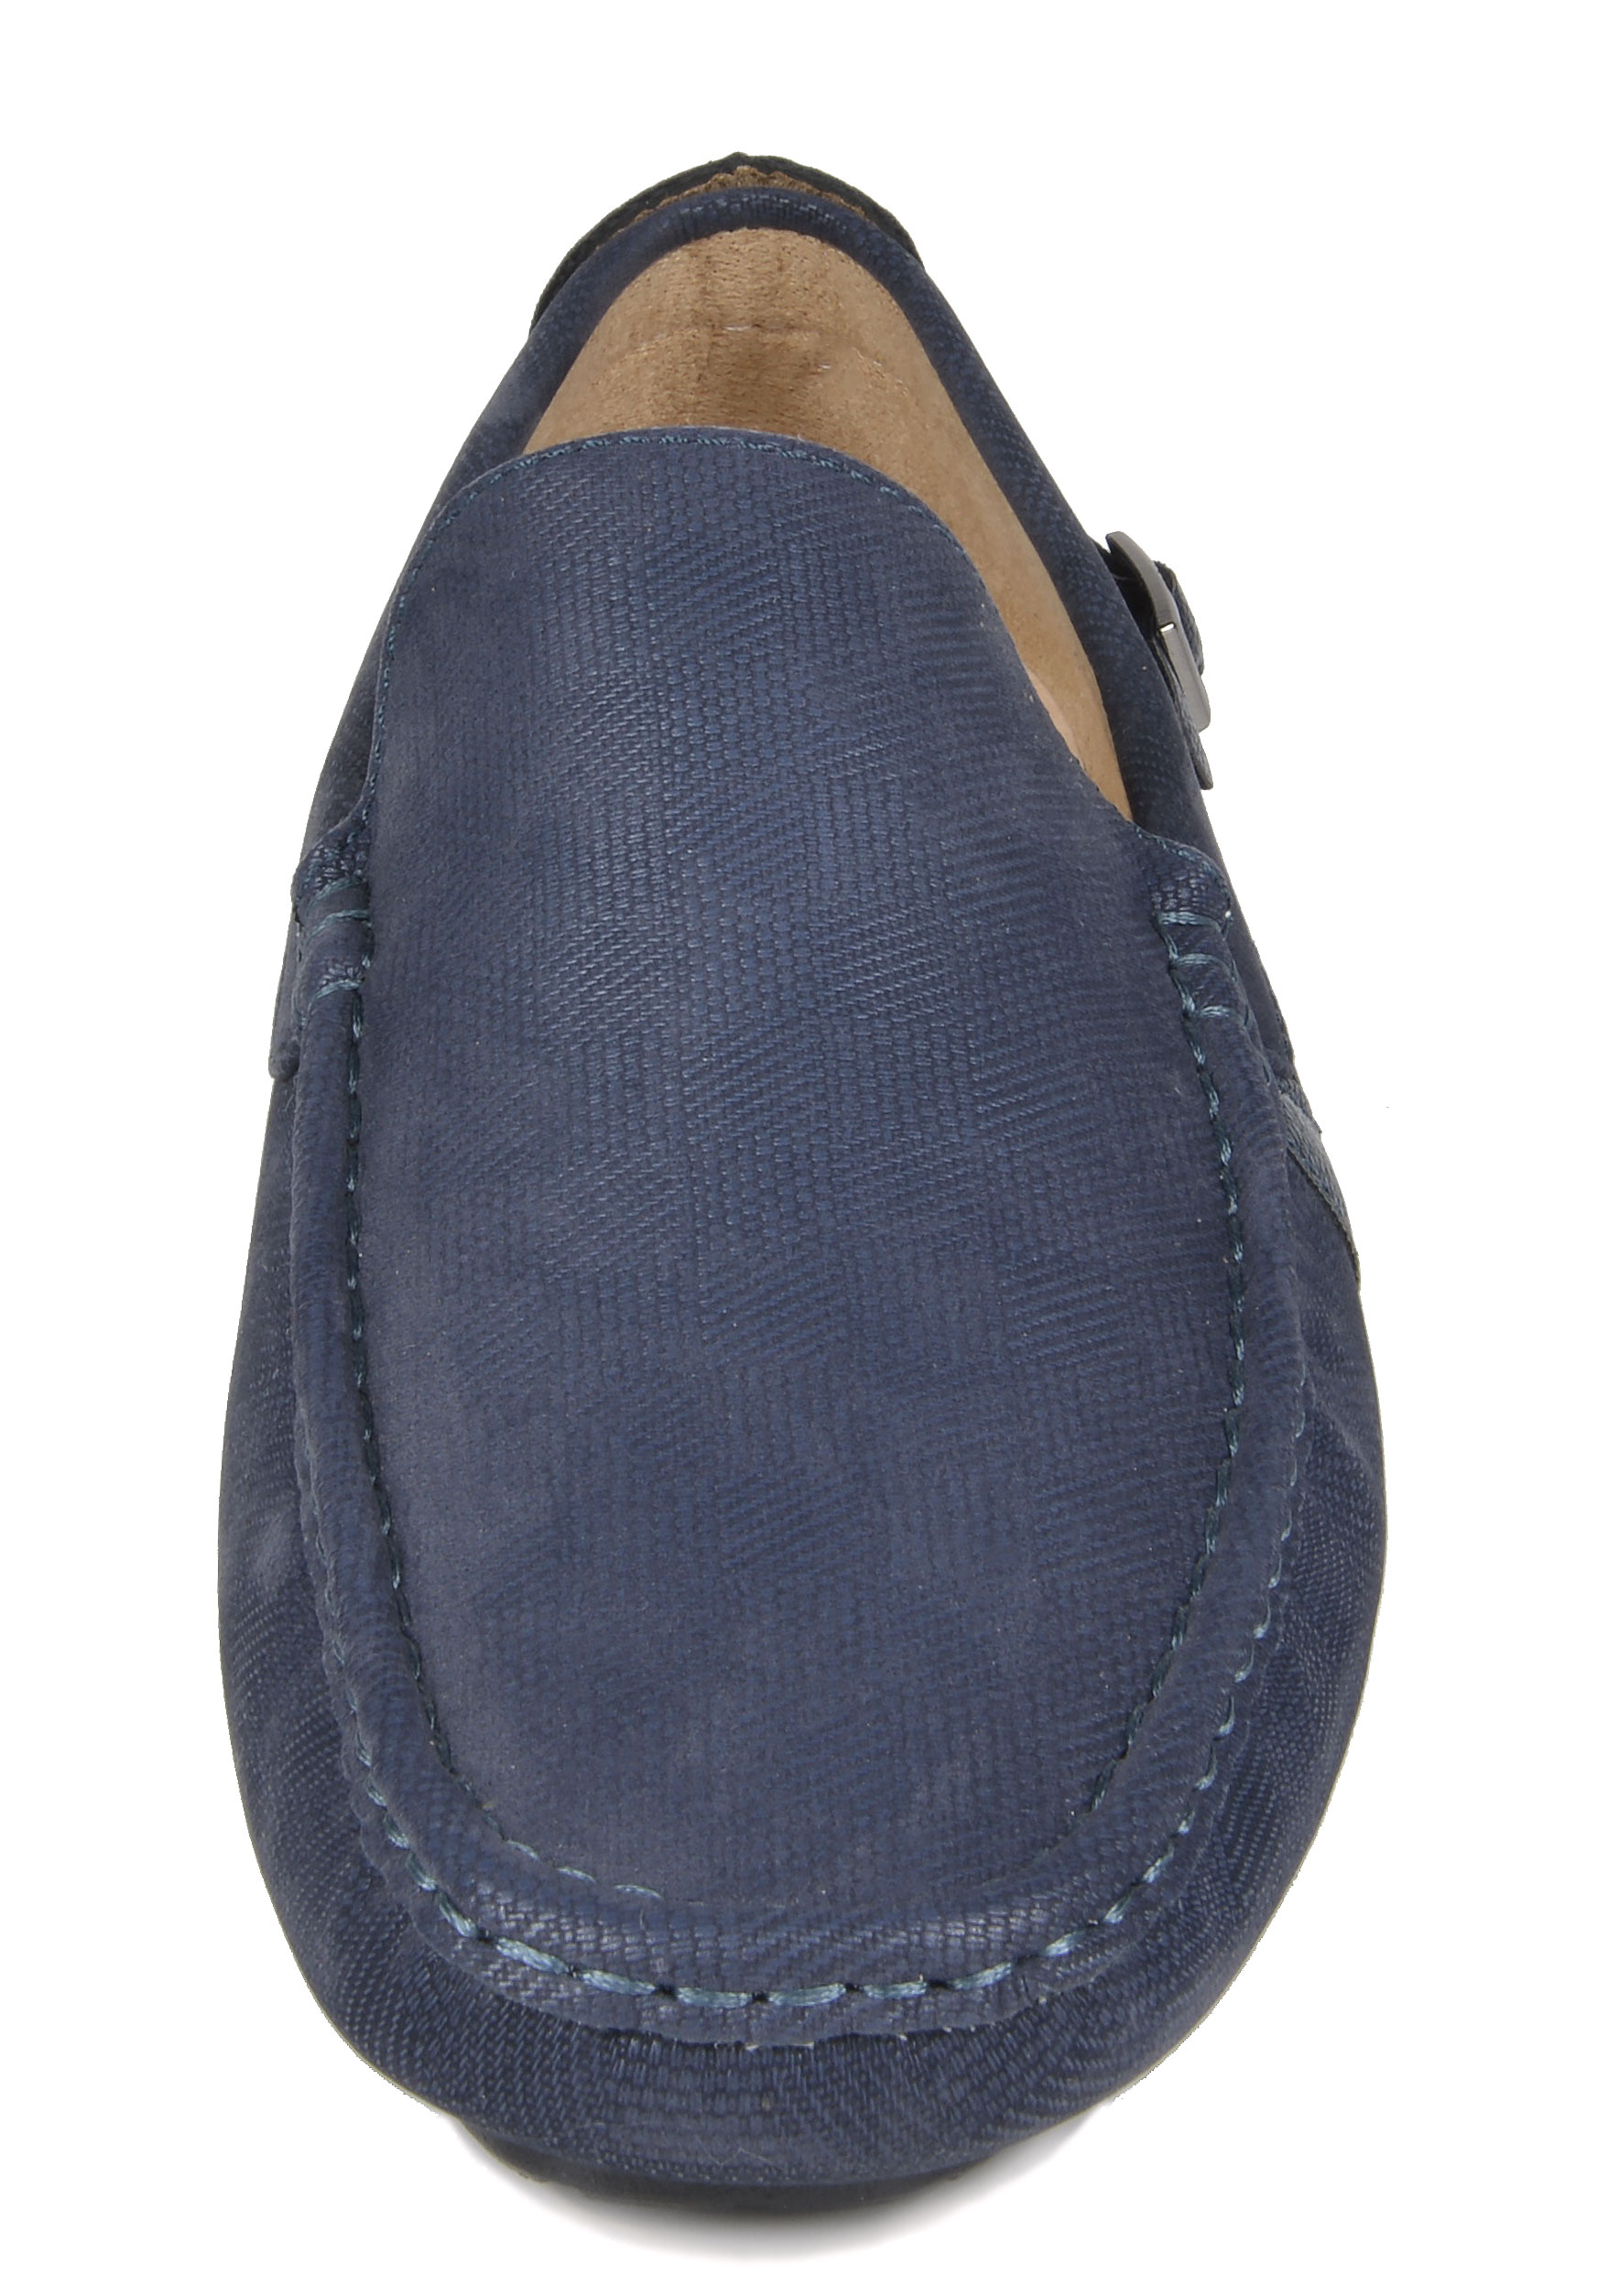 Bruno-Marc-Men-039-s-New-Classic-Fashion-Slip-on-Driving-Casual-Loafers-Boat-Shoes thumbnail 135